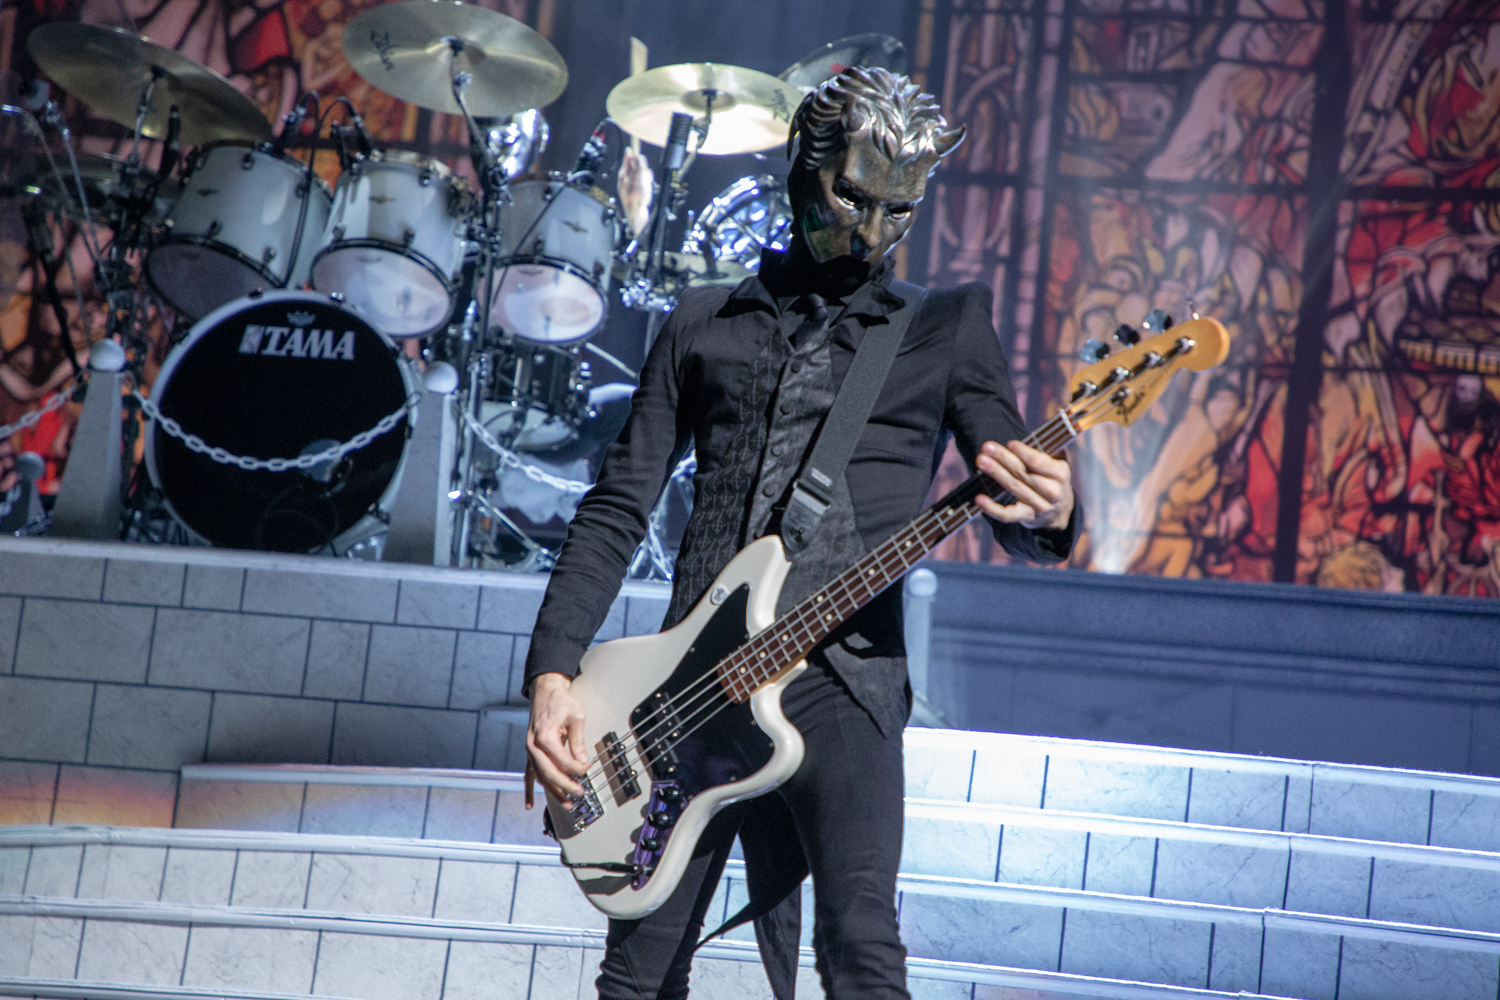 Ghost Barclays Center 2018 16 Live Review: Ghost Turn Brooklyns Barclays Center Into a House of Worship (12/15)